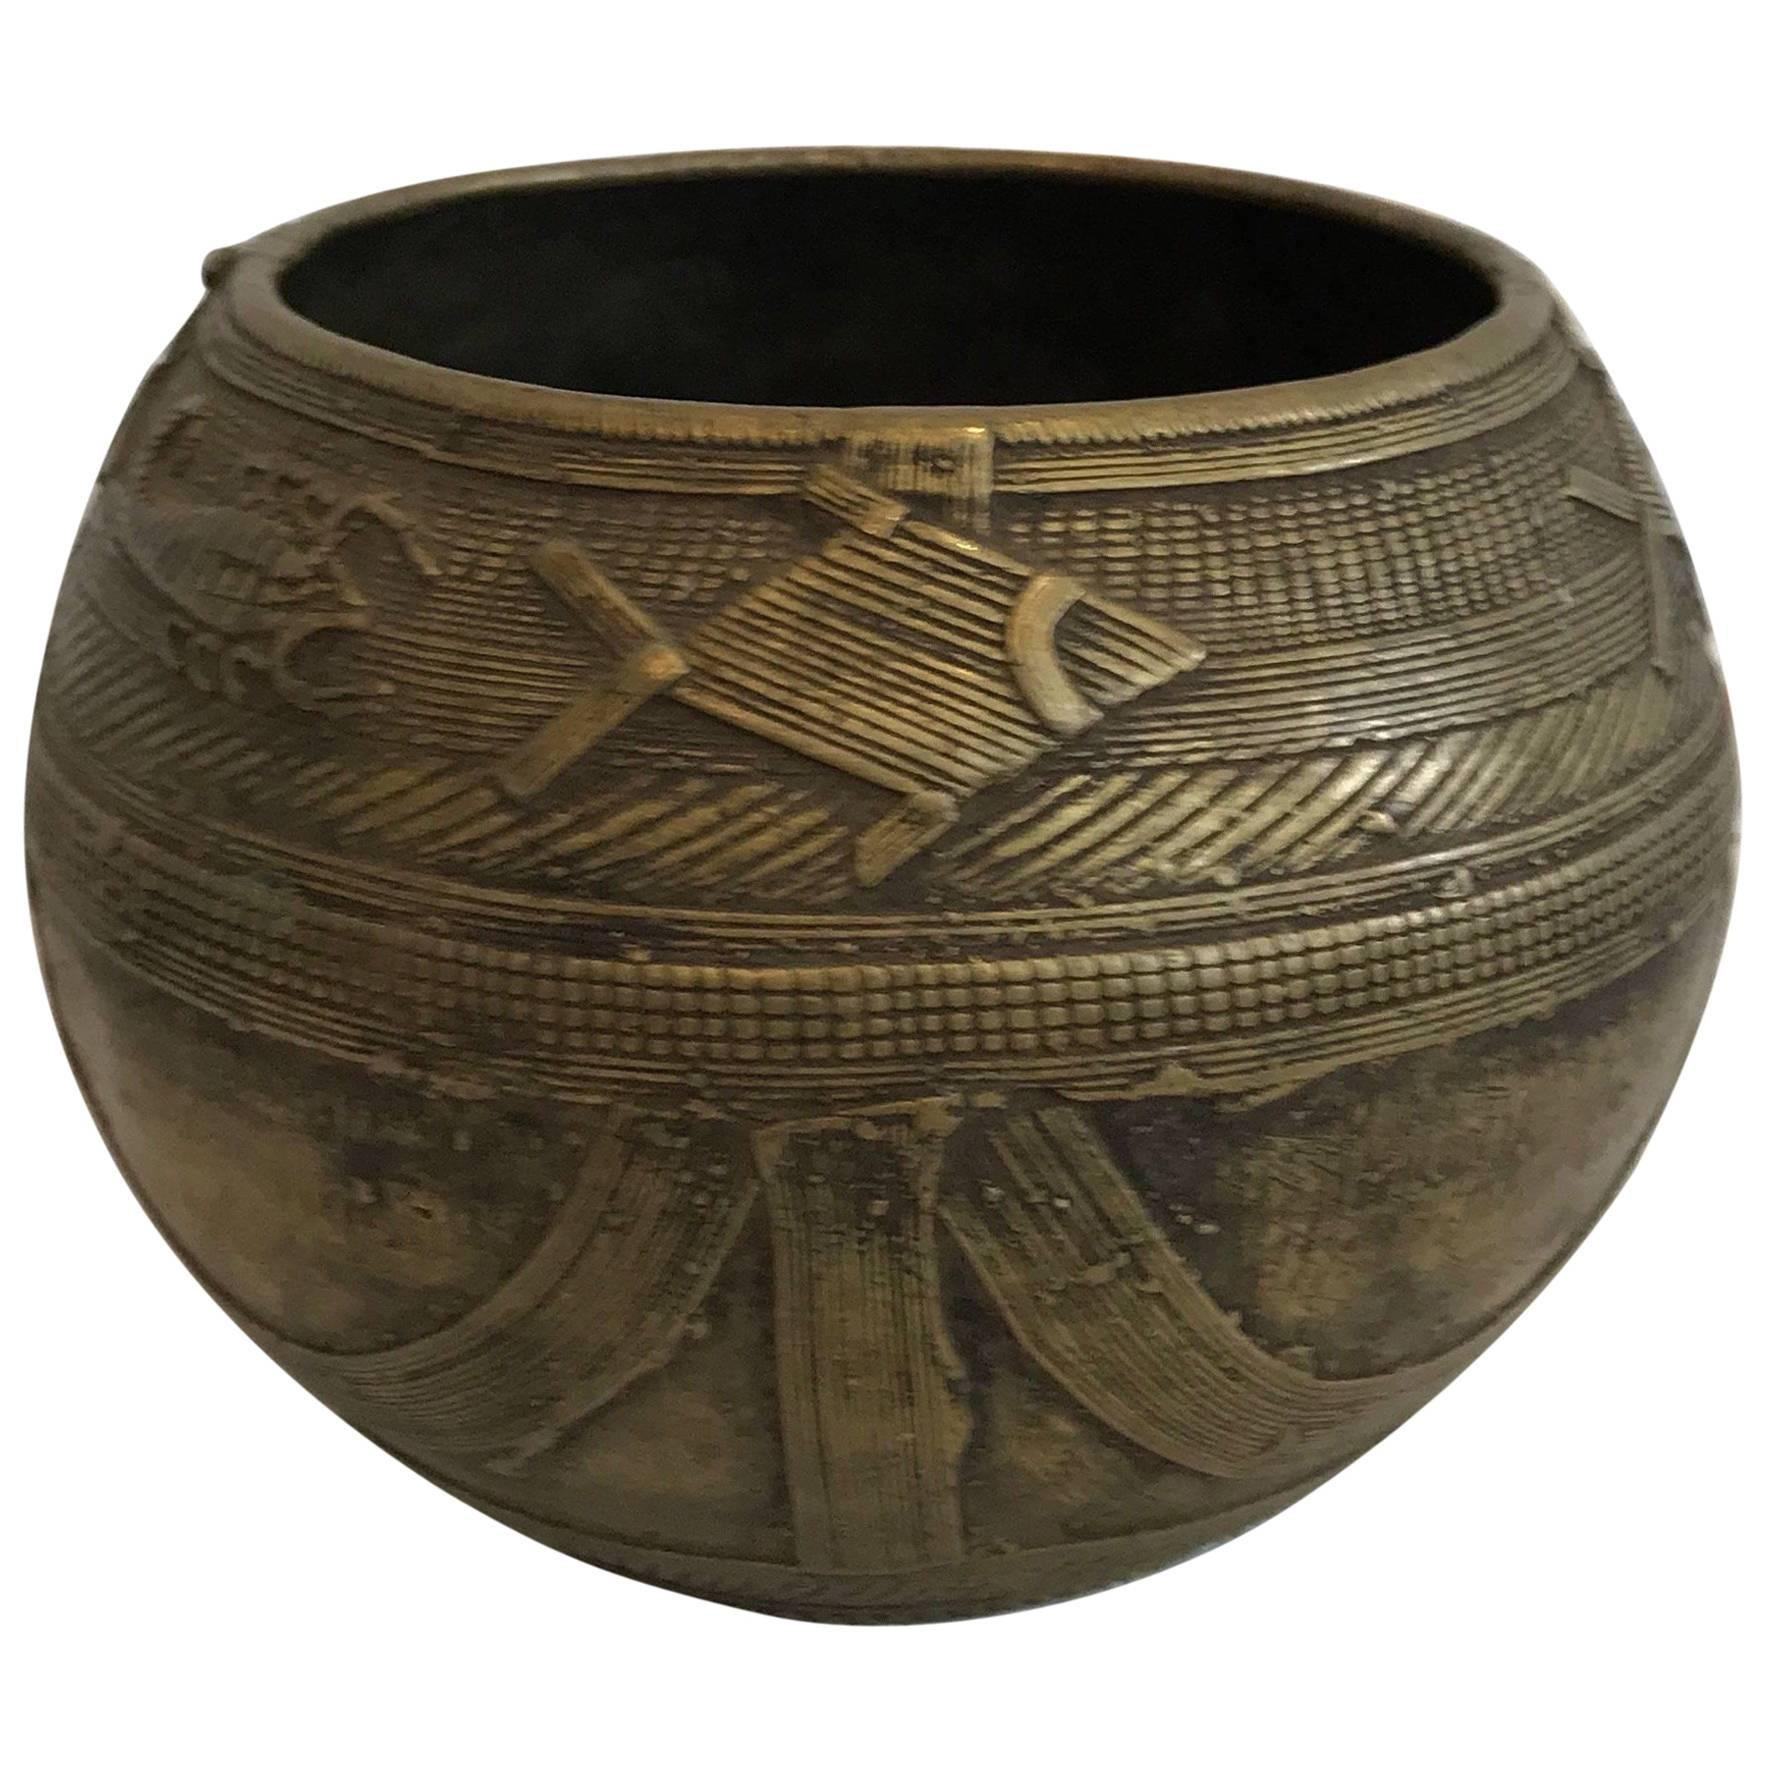 Early 20th century Dhorkra Measuring Bowl